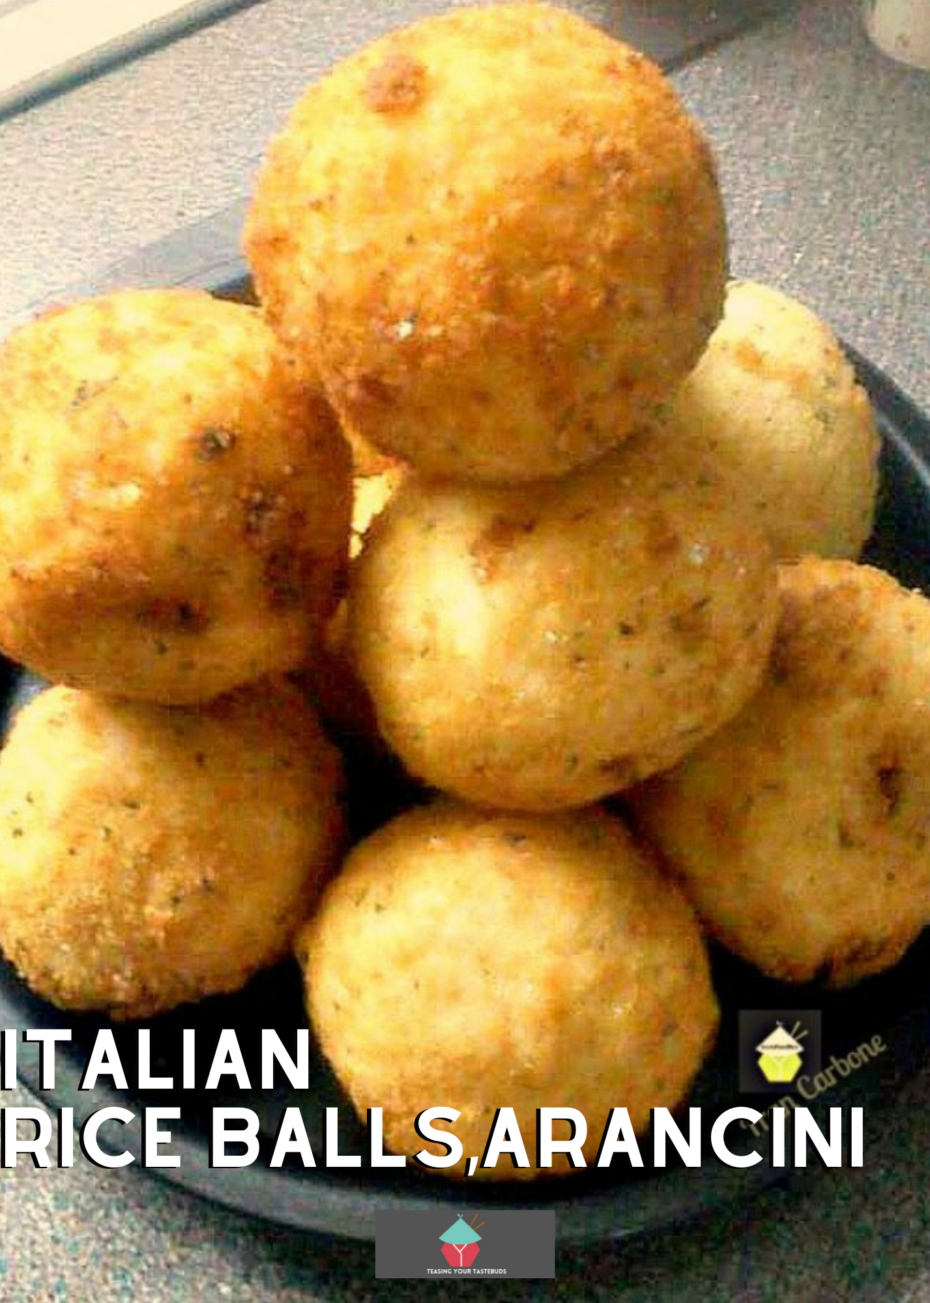 Italian Rice Balls, arancini. Easy to make rice balls, filled with homemade beef ragu, then coated in breadcrumbs and fried. Delicious appetizers, party food or supper recipe